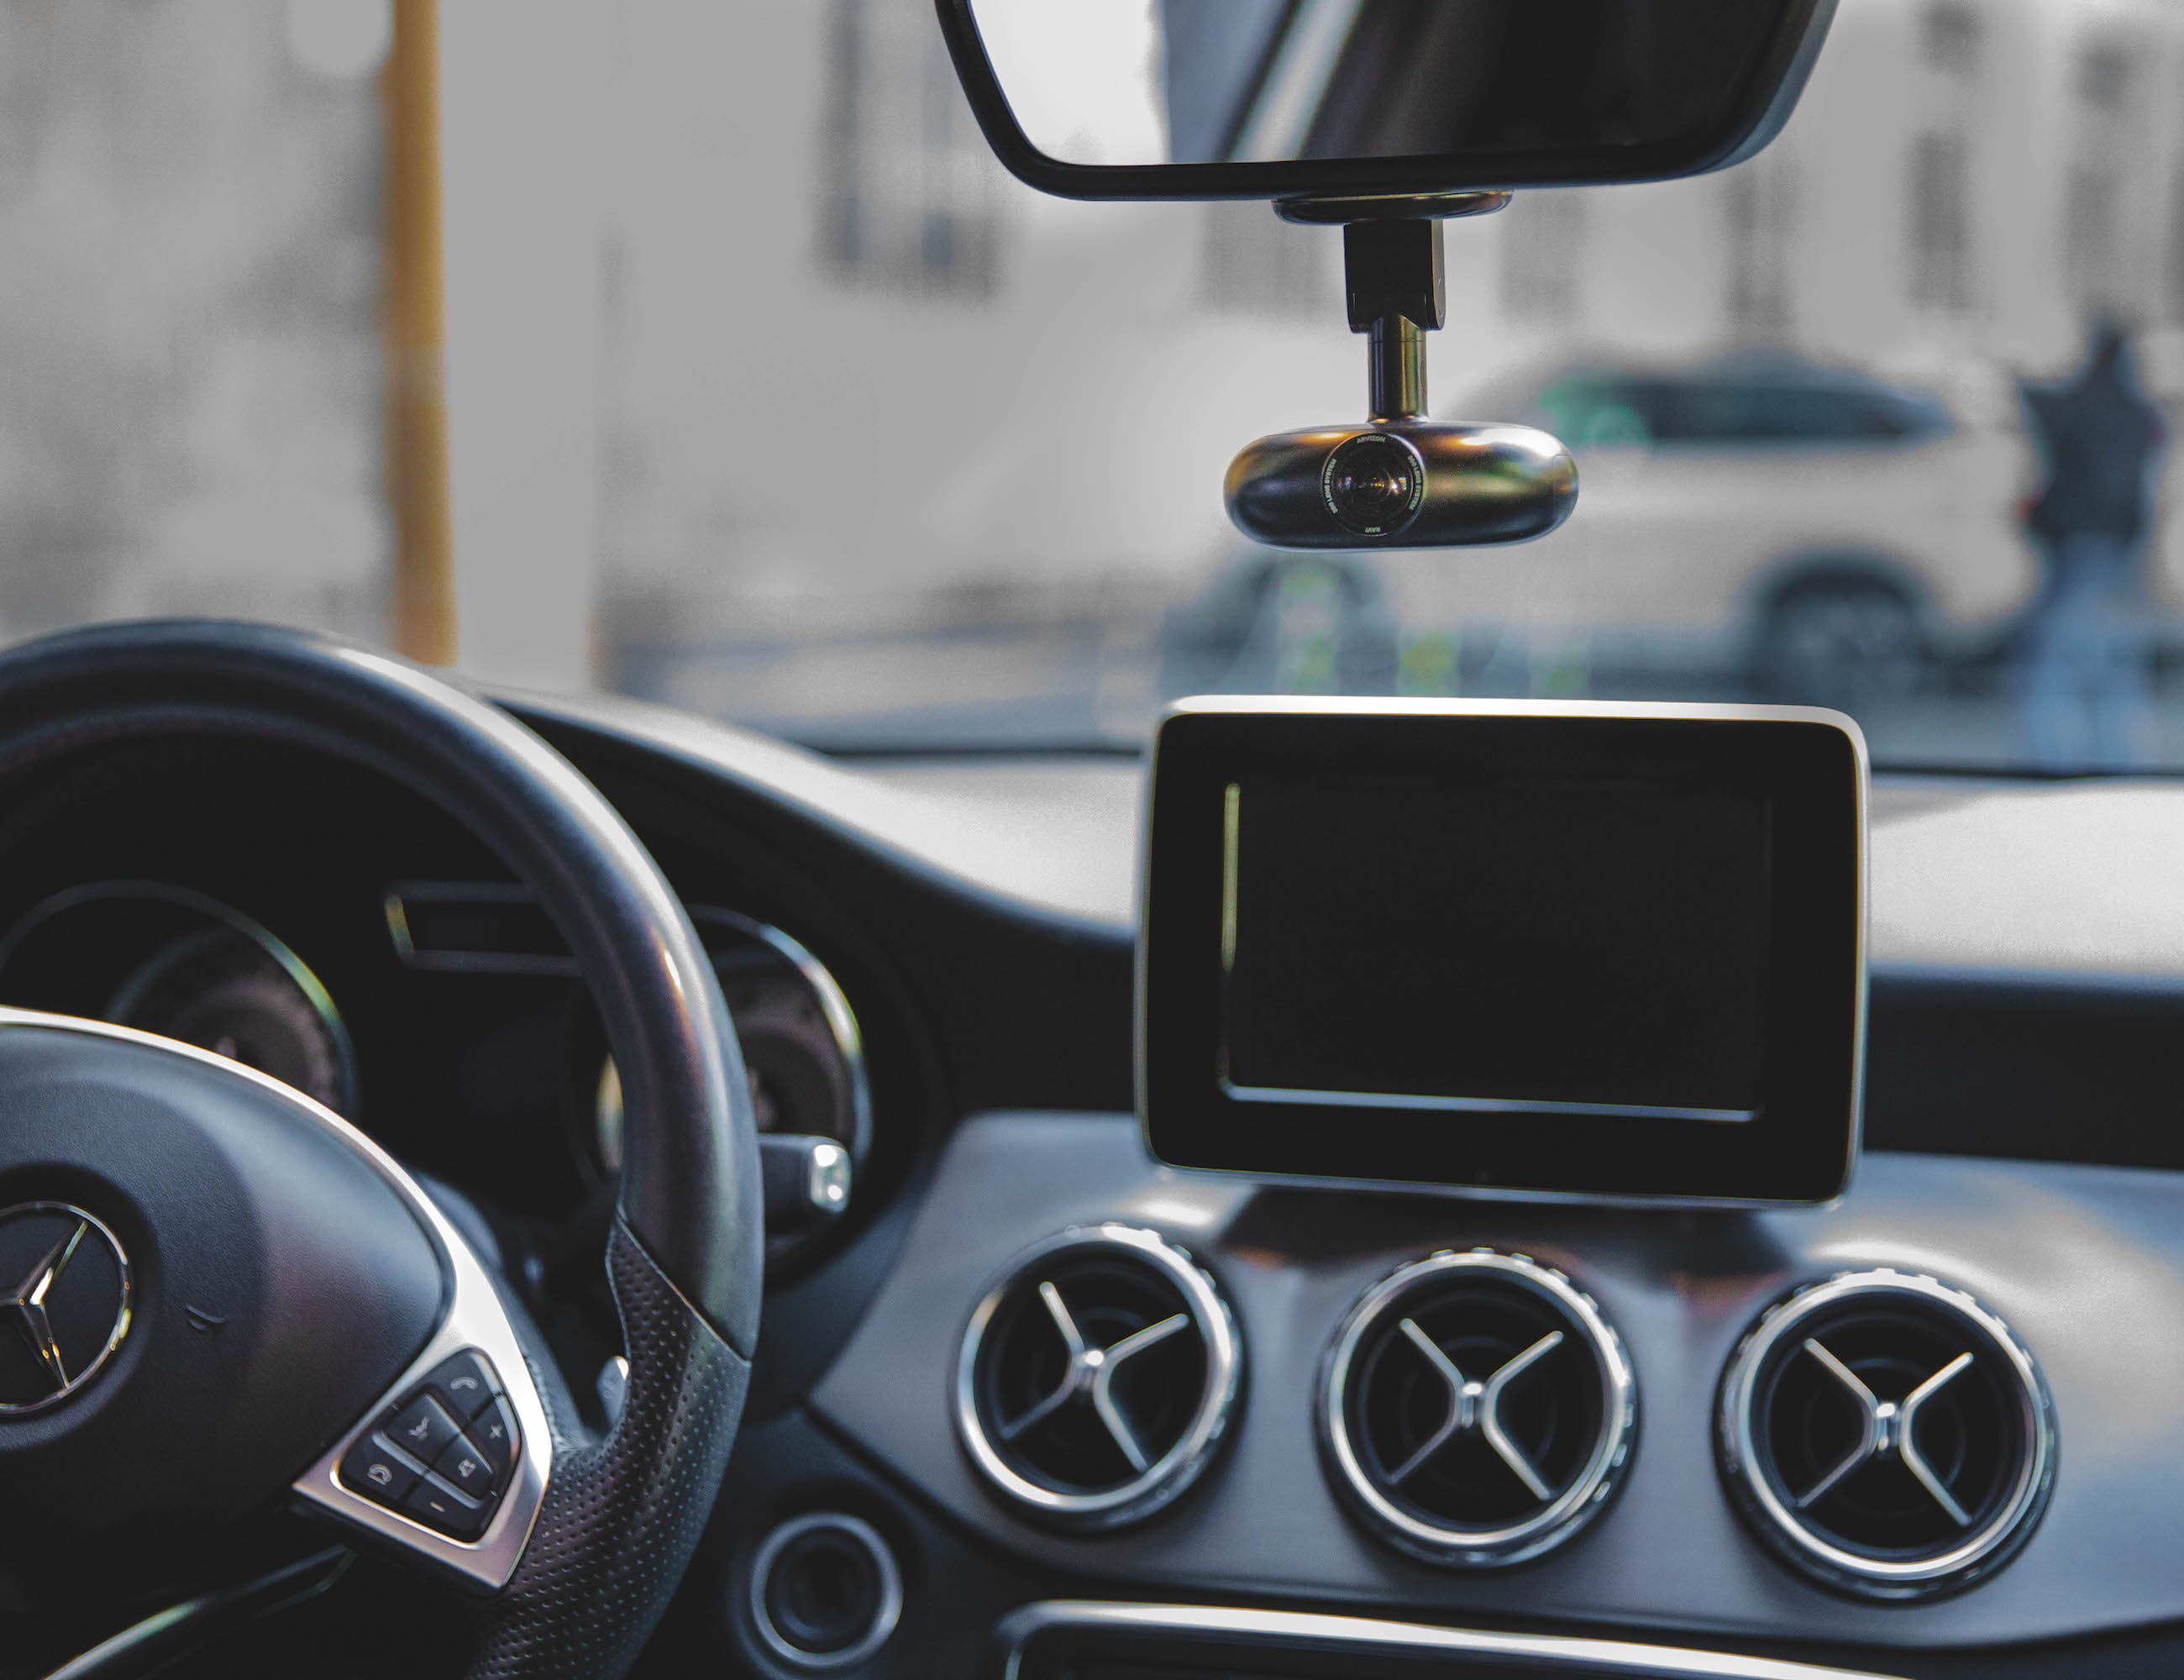 VEZO 360 4K 360-Degree Smart Dash Cam protects your vehicle and your passengers